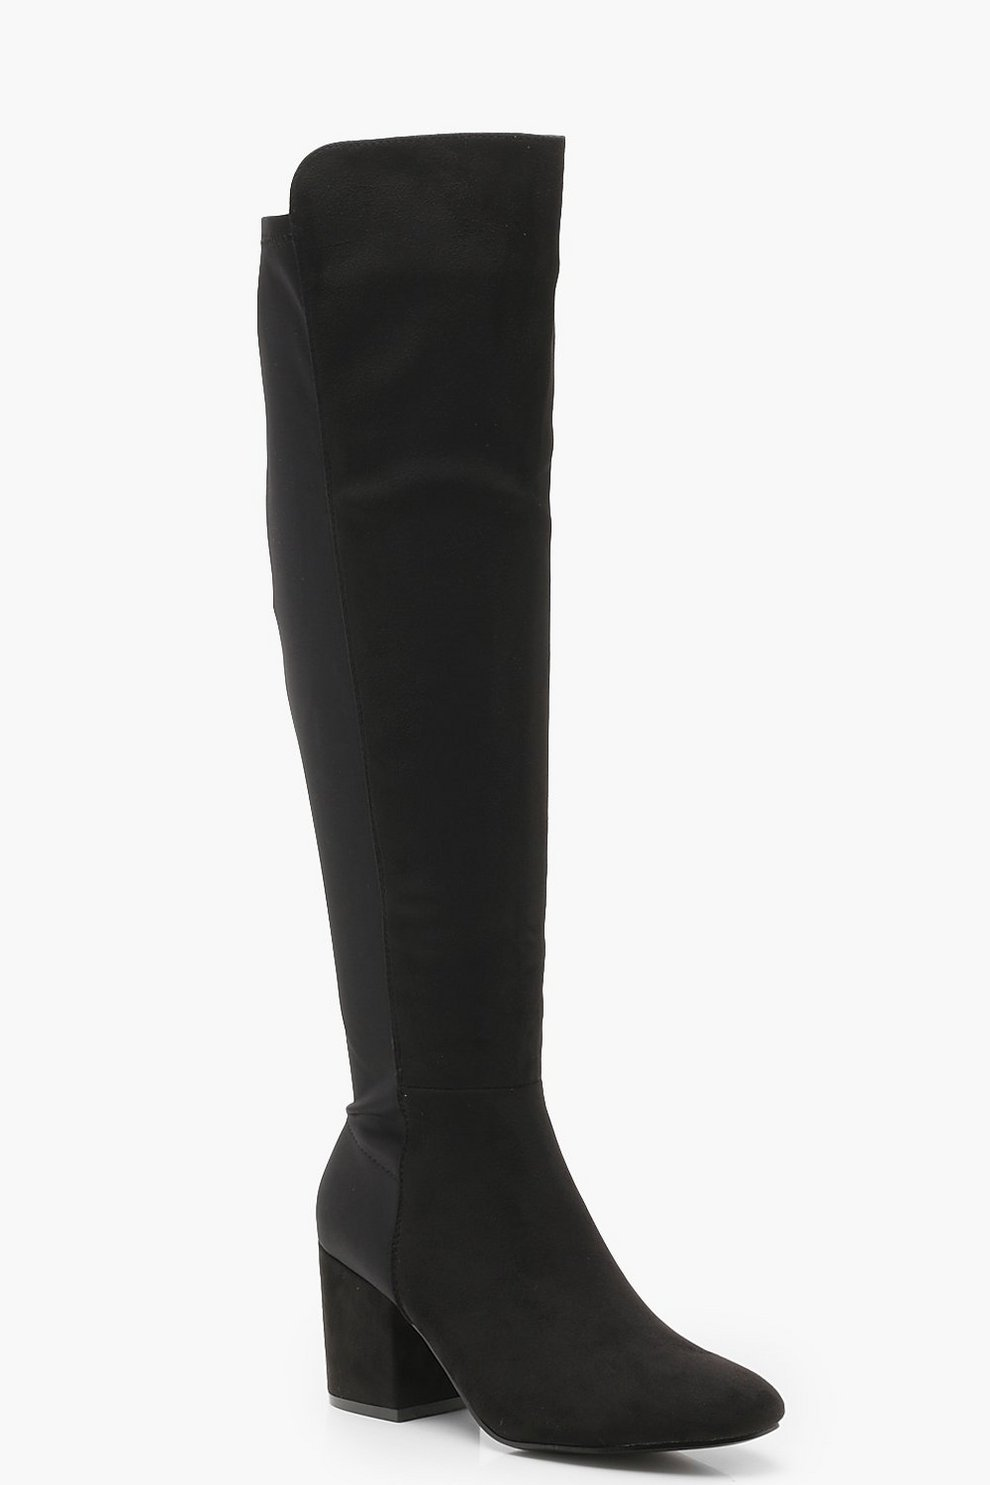 53ac459b63 Womens Black Thigh High Stretch Back Block Heel Boots. Hover to zoom